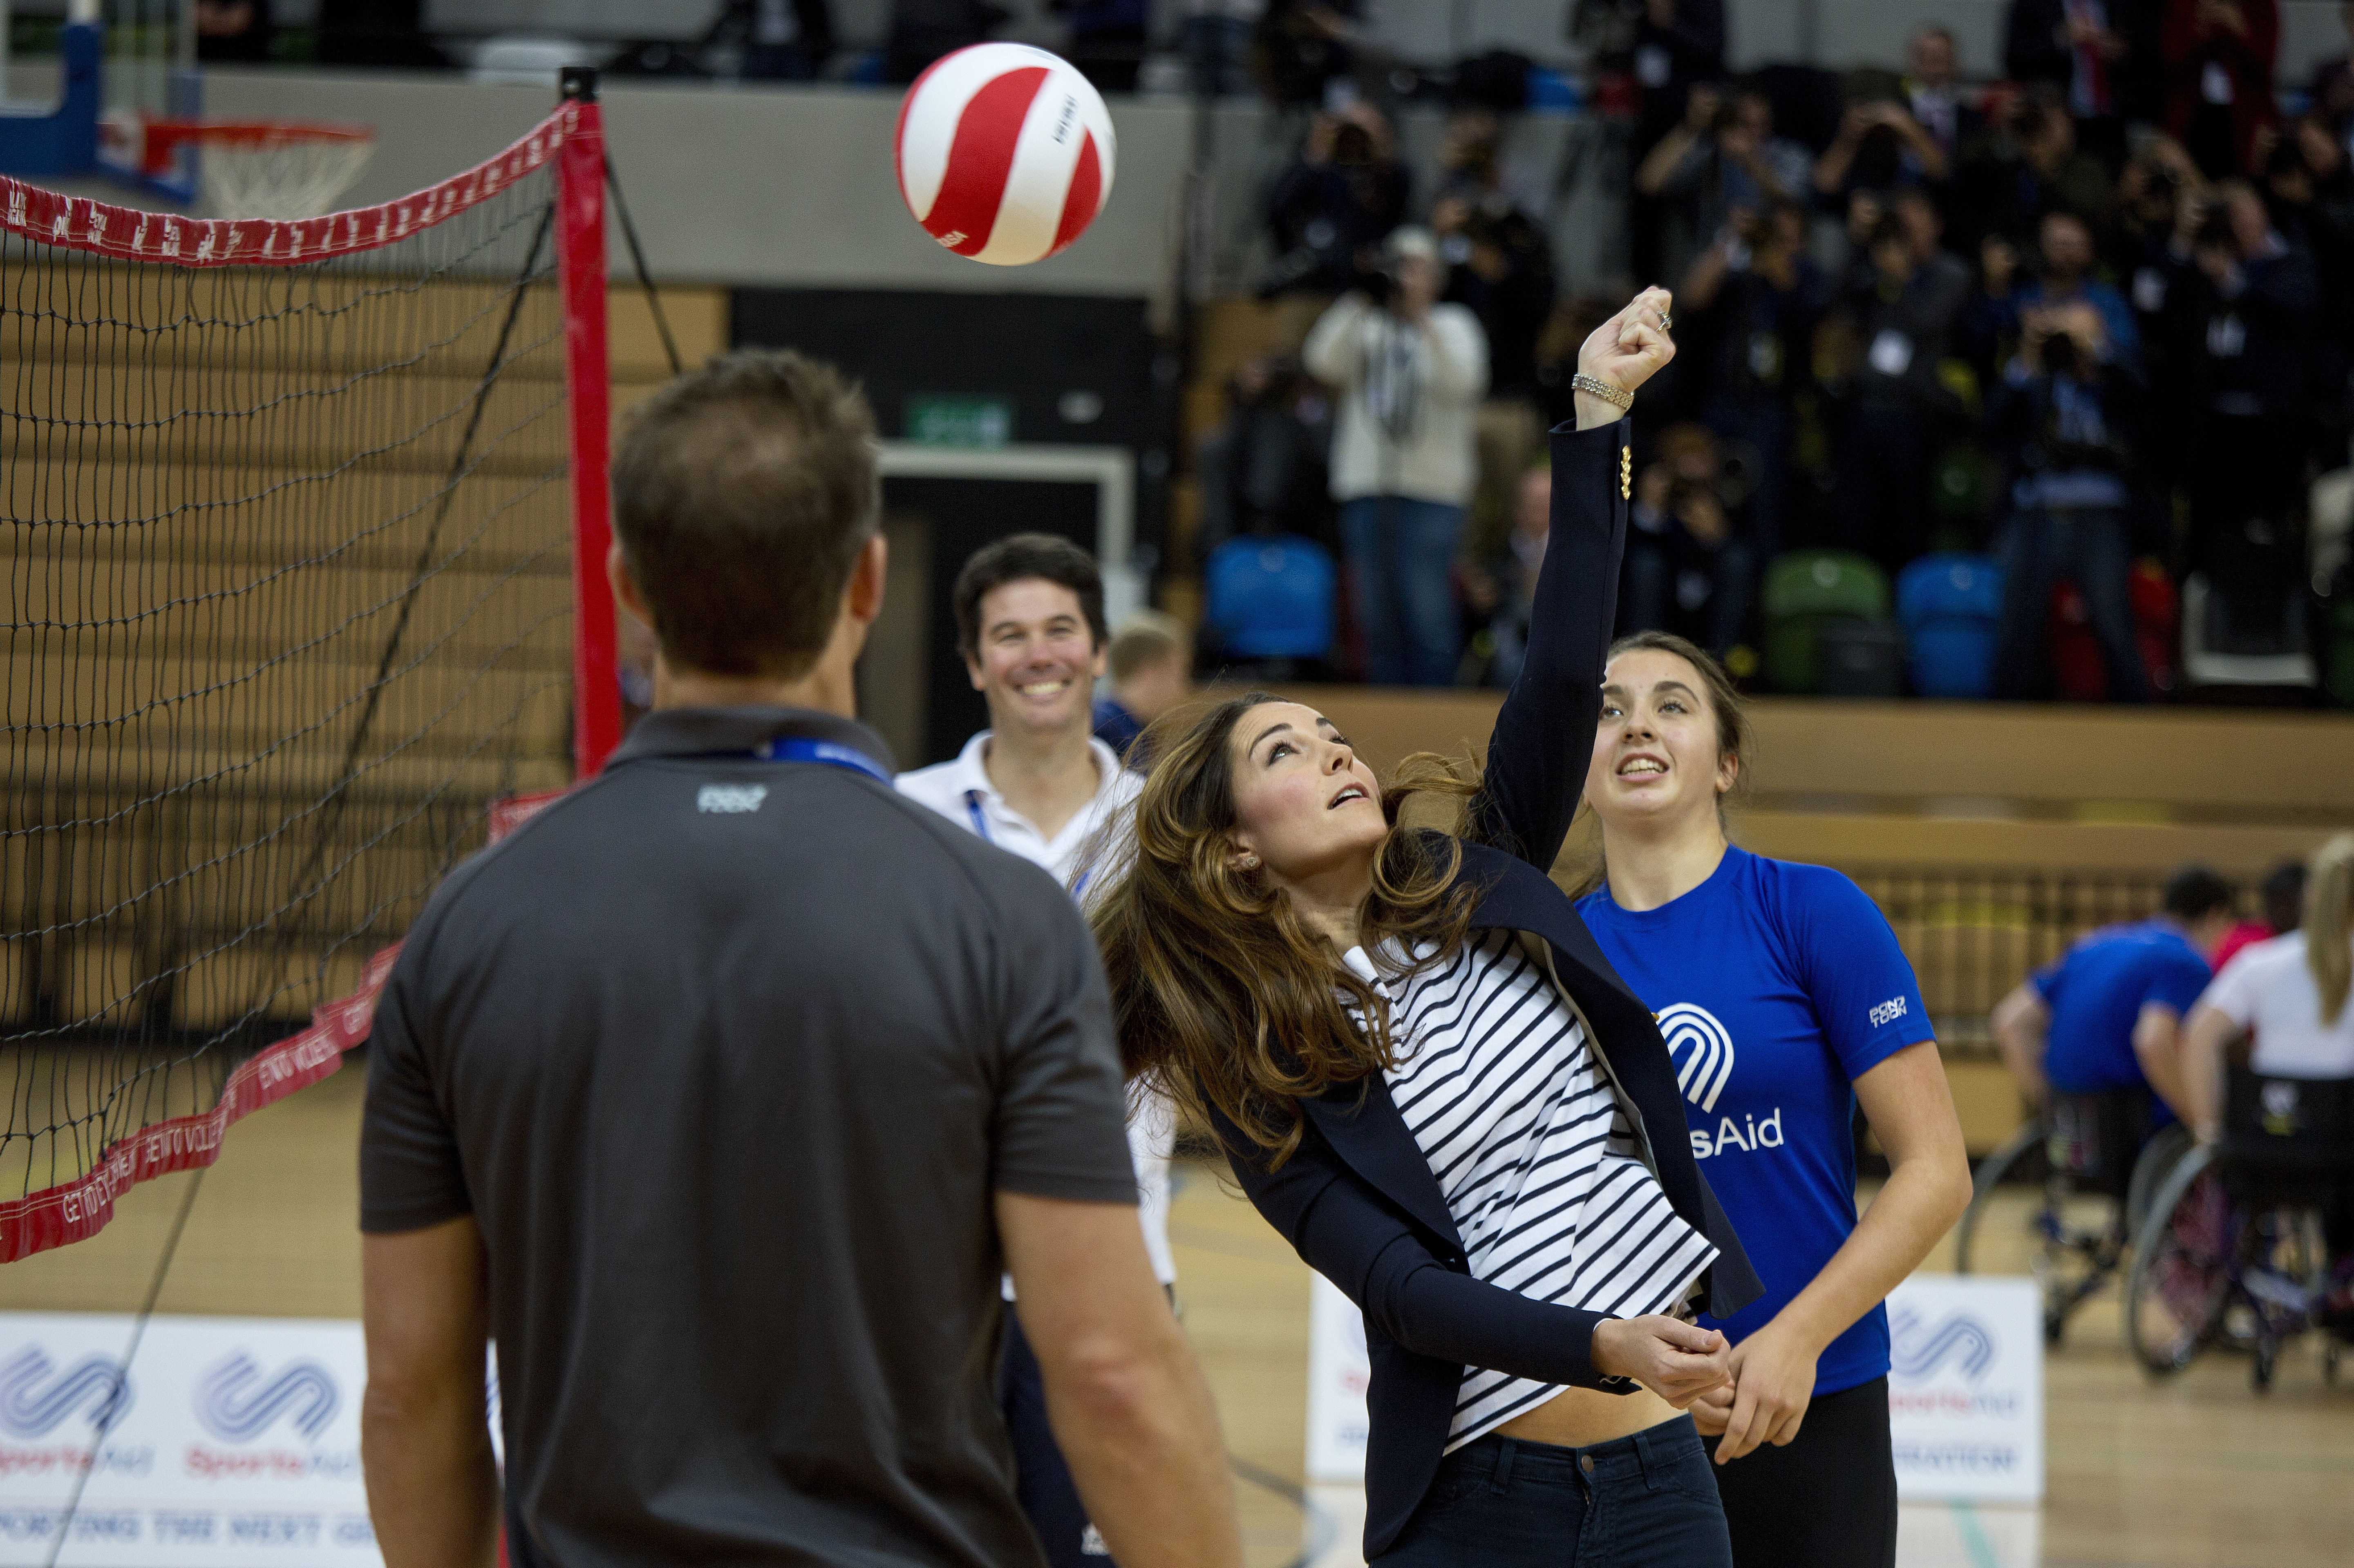 Britain's Catherine, Duchess of Cambridge (2nd R), plays volleyball during a trip to the SportsAid Athlete Workshop in the Copper Box at the Queen Elizabeth Olympic Park in east London on October 18, 2013